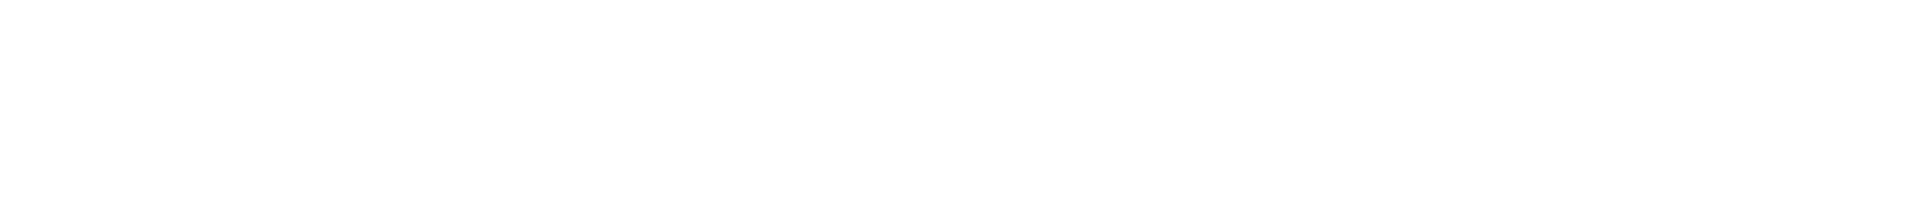 Picture's logo